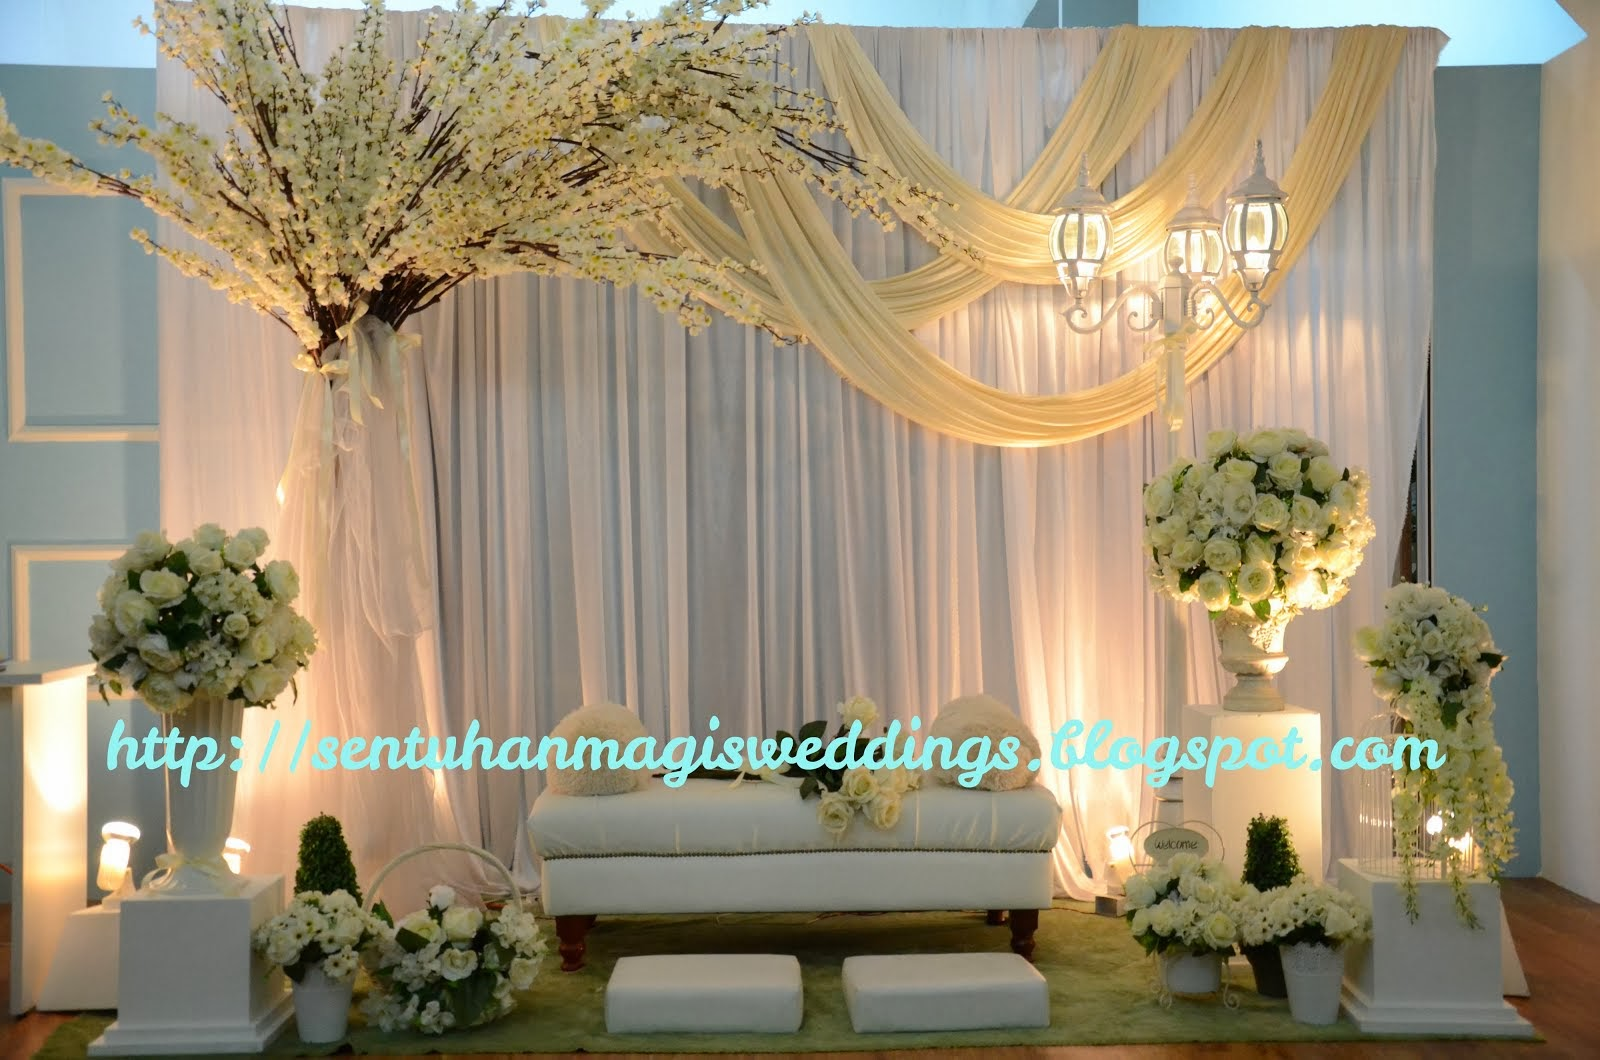 DAIS BY SENTUHAN MAGIS WEDDING AND DECOR